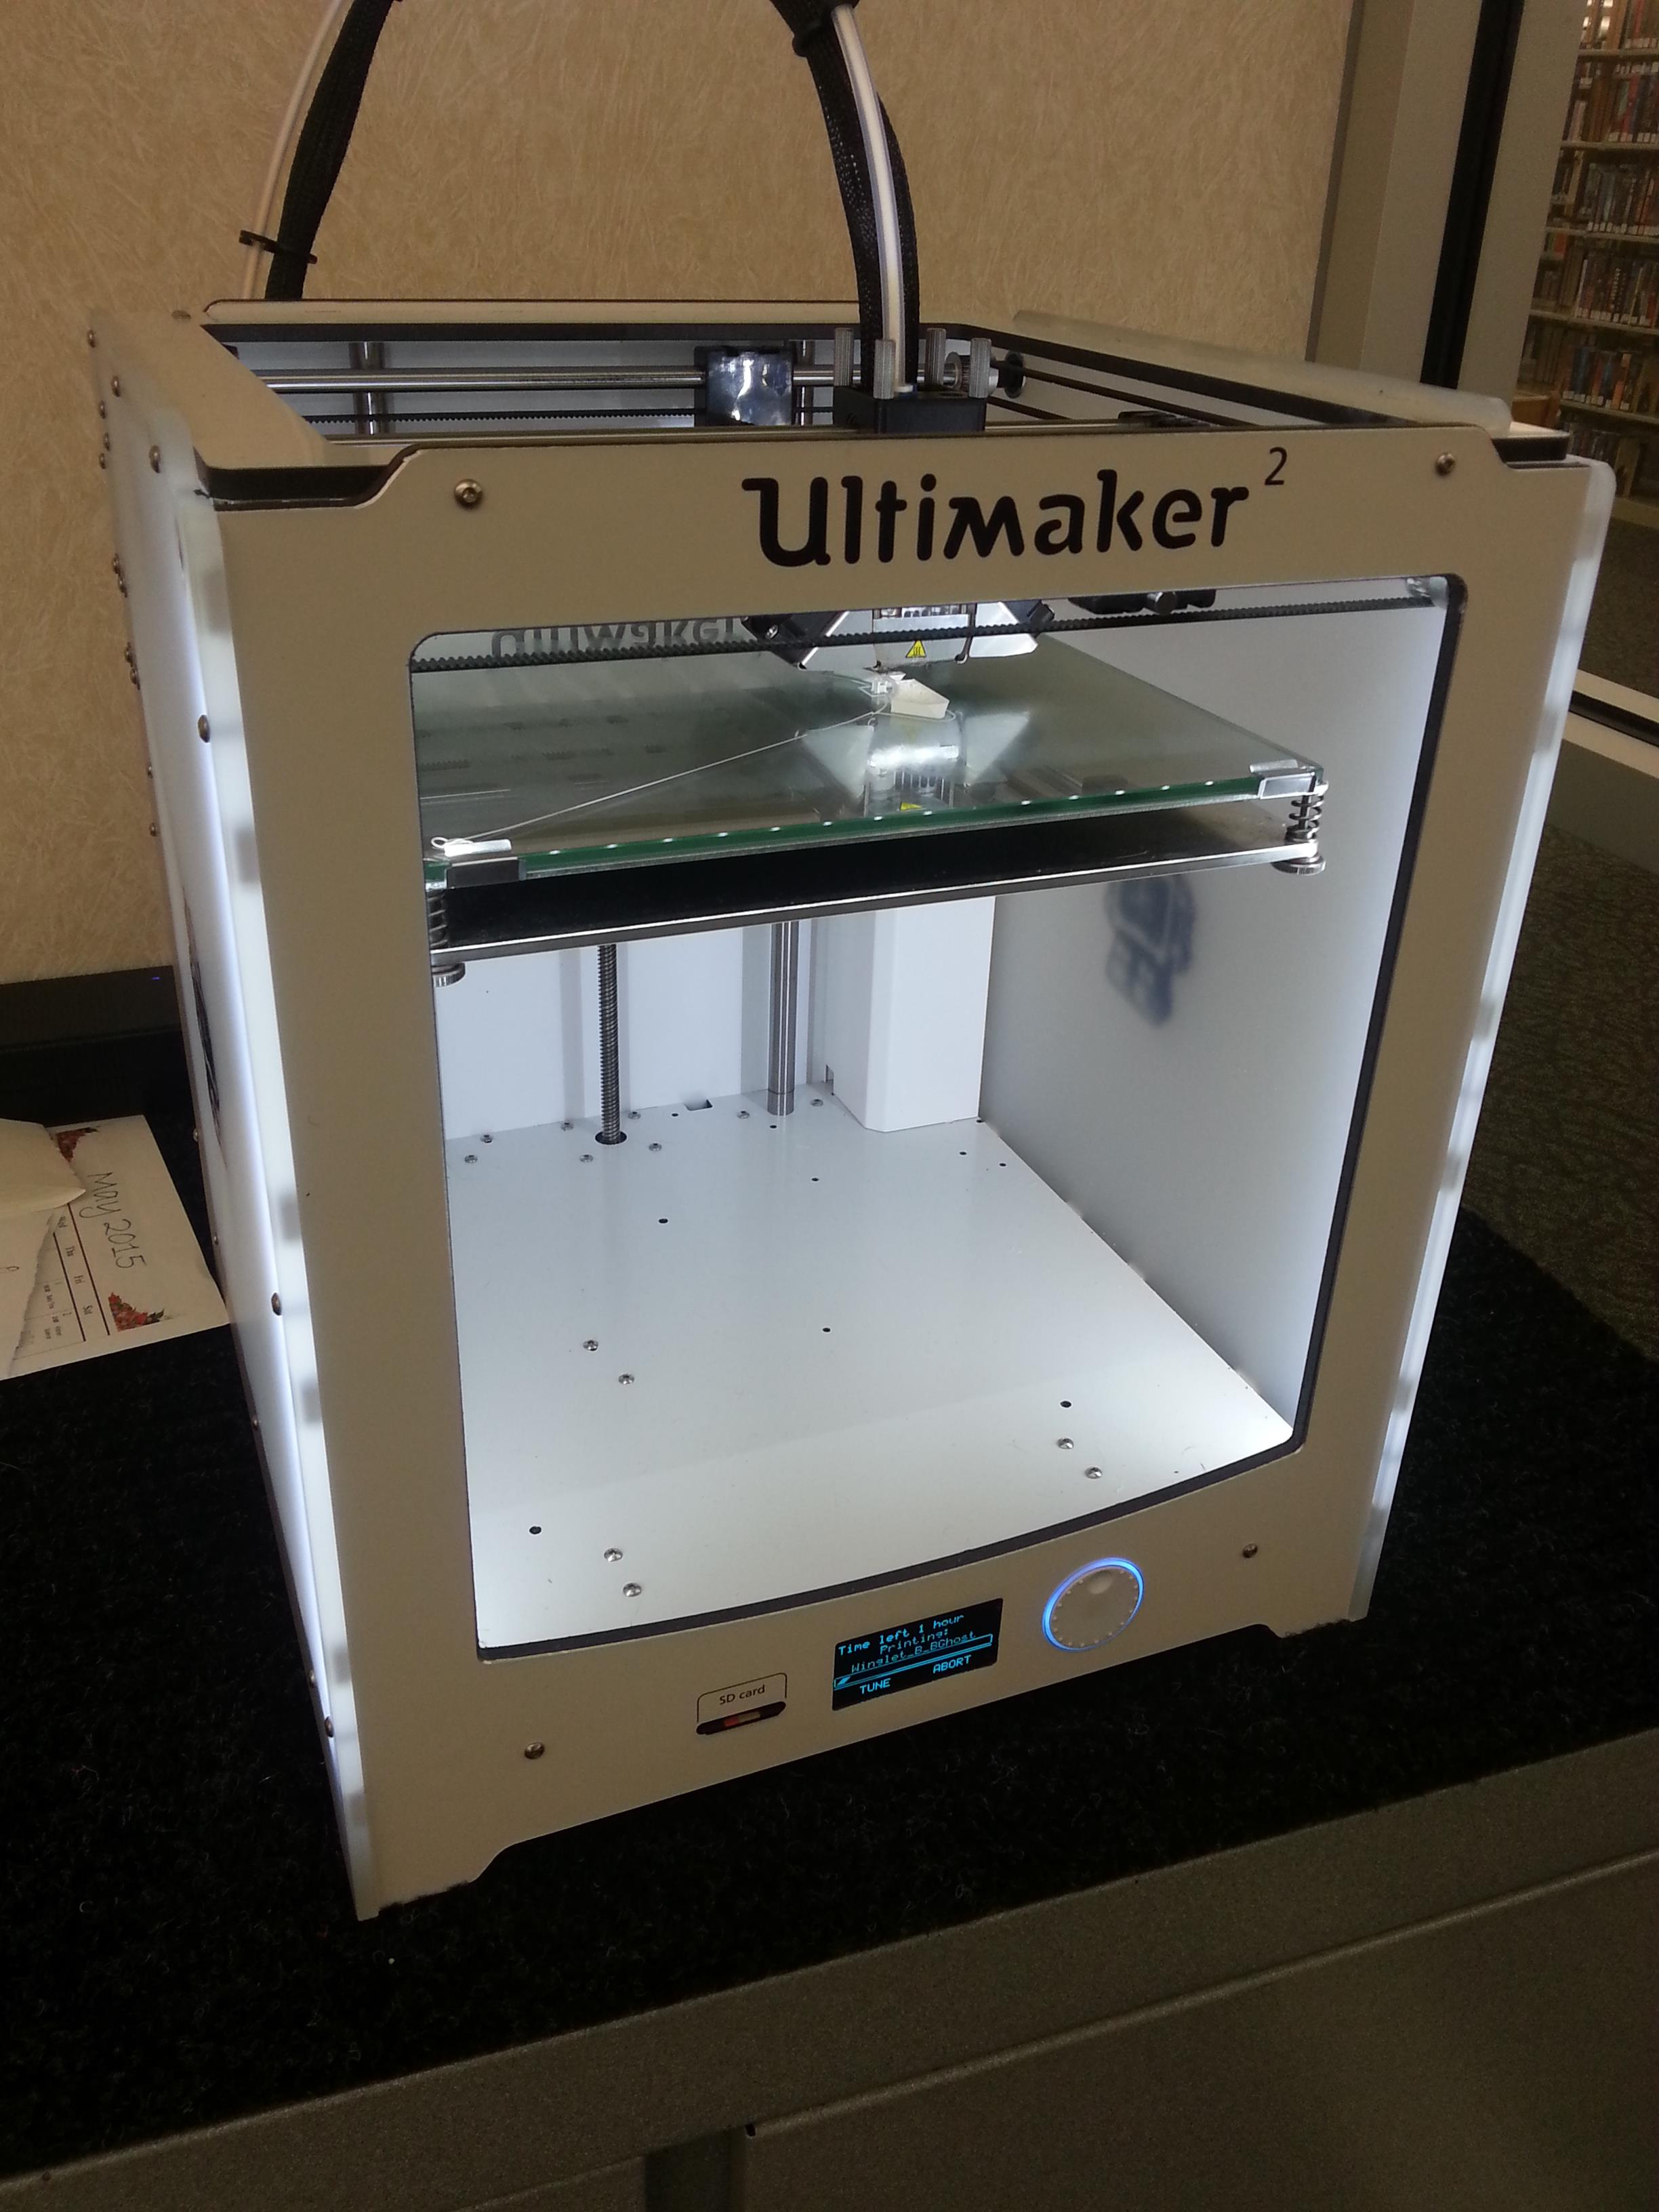 ultimaker_thumb.jpg